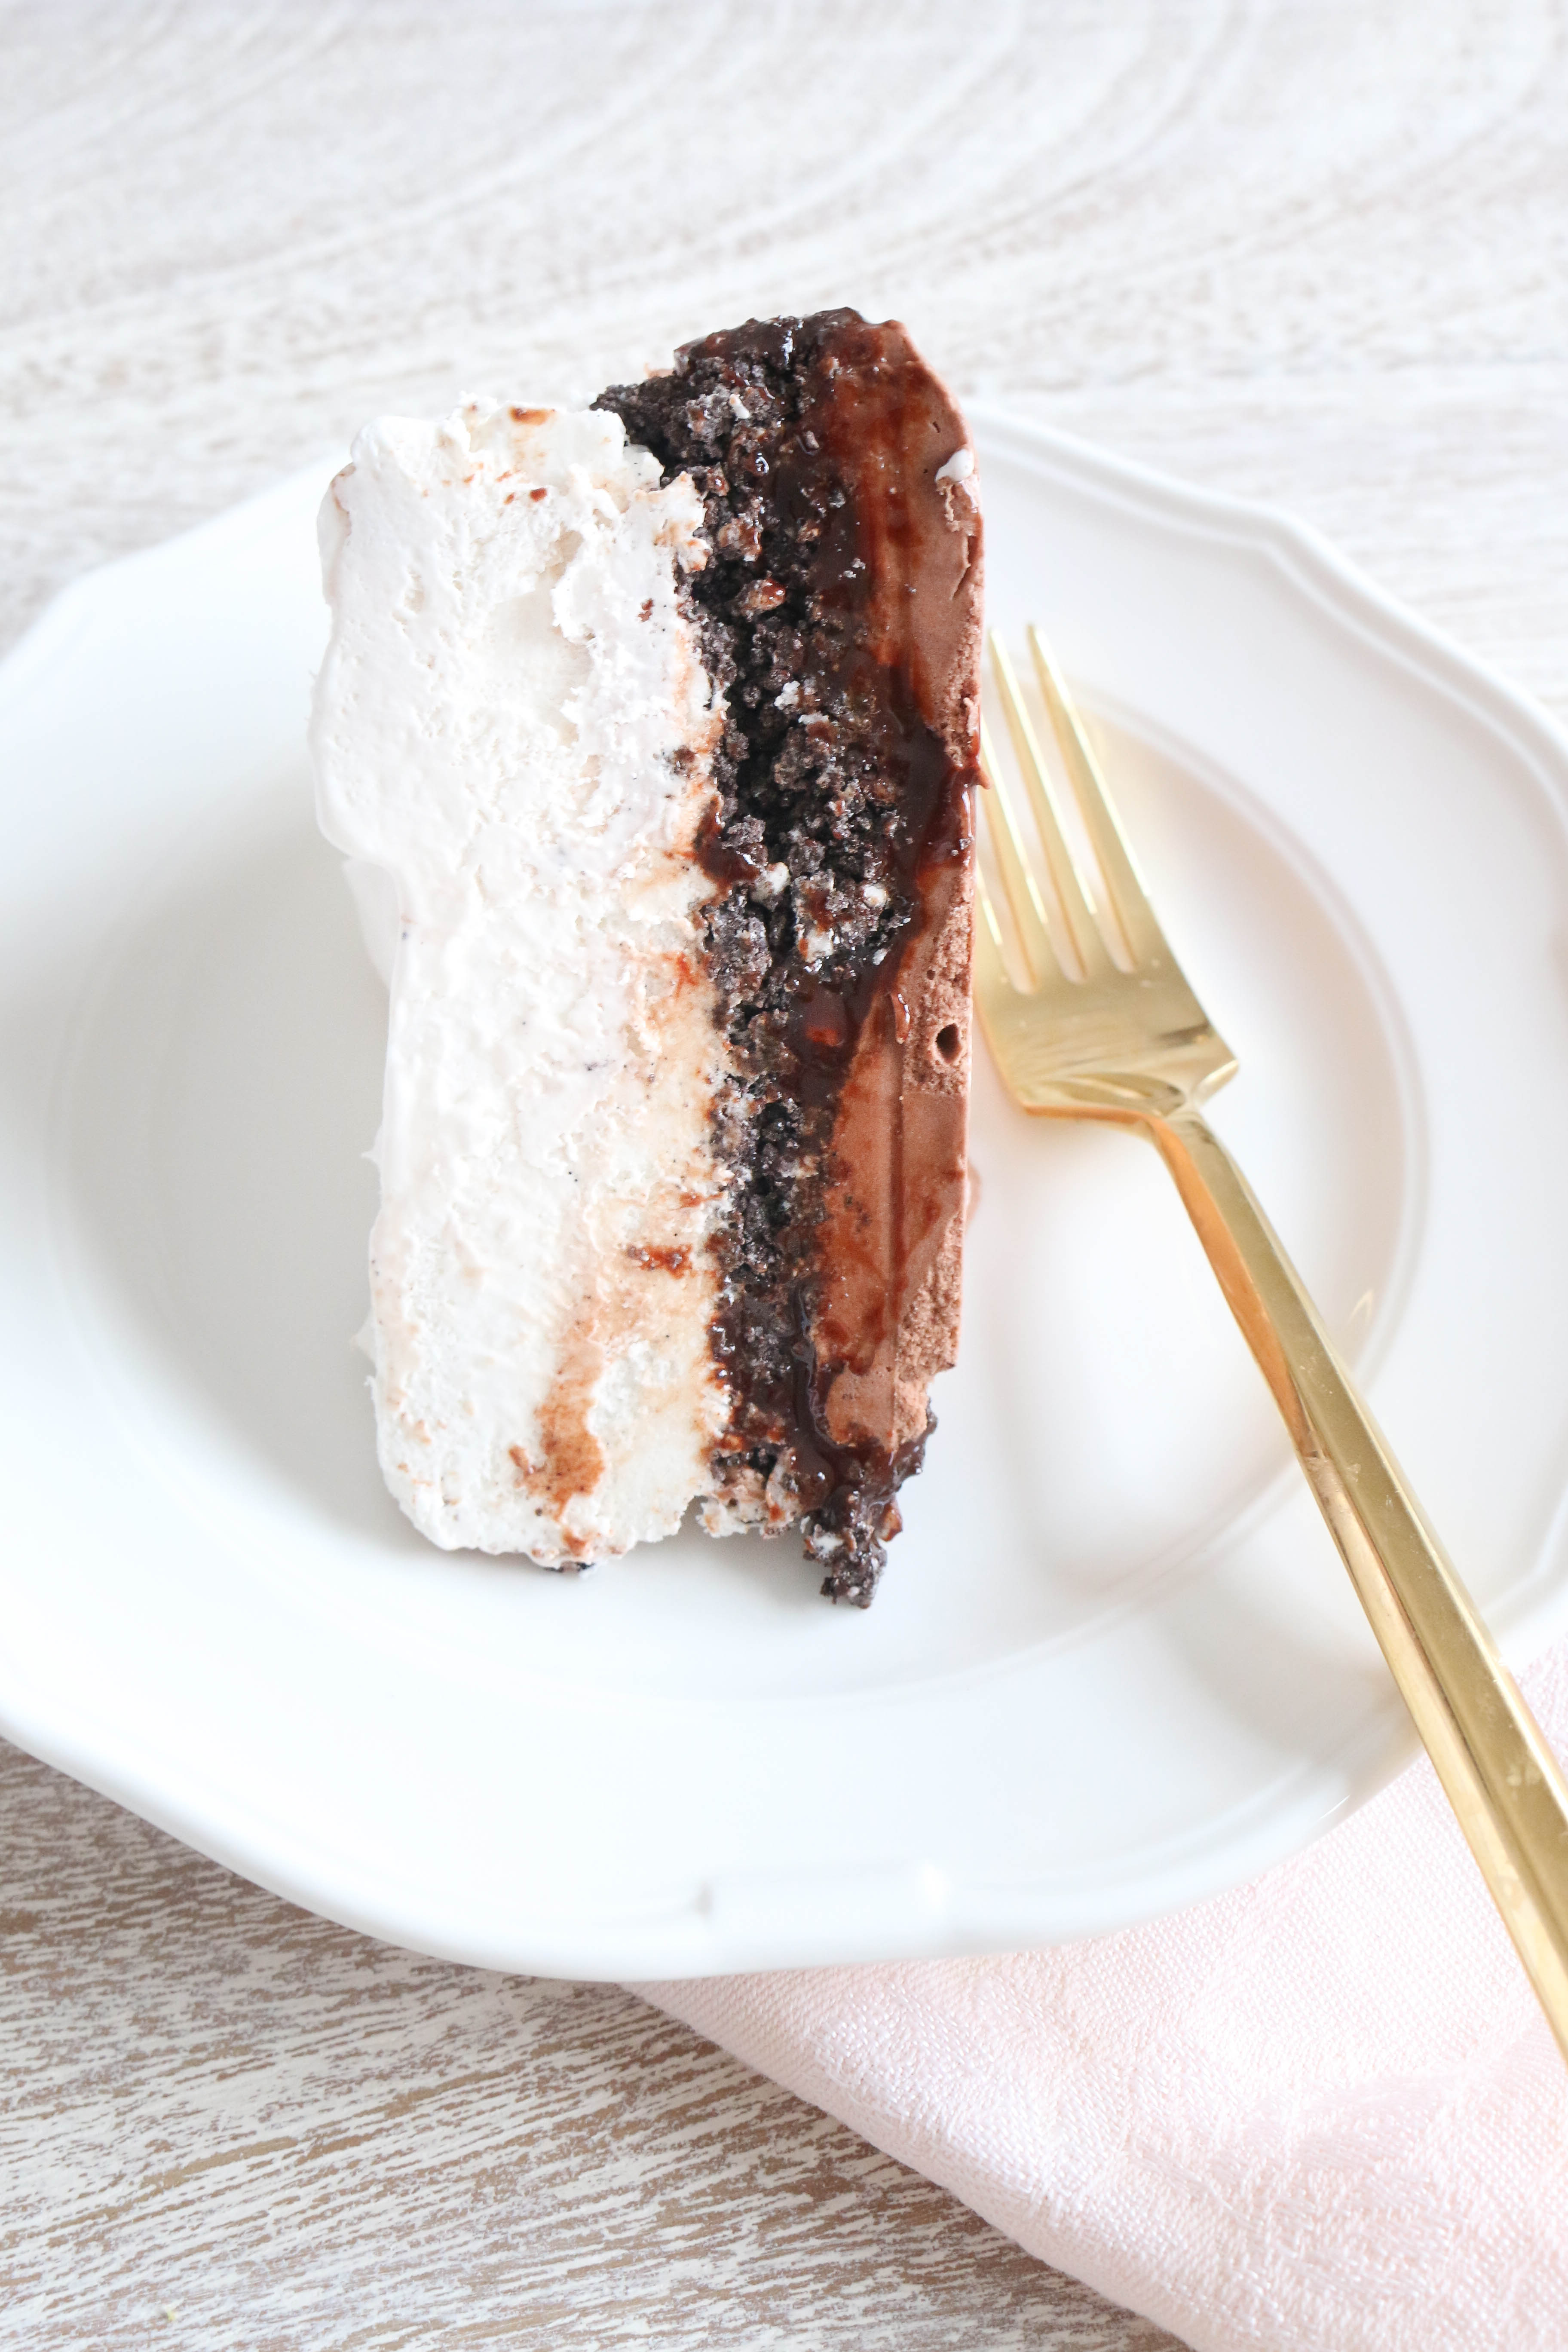 Gluten and Dairy Free DQ Ice Cream Cake Recipe